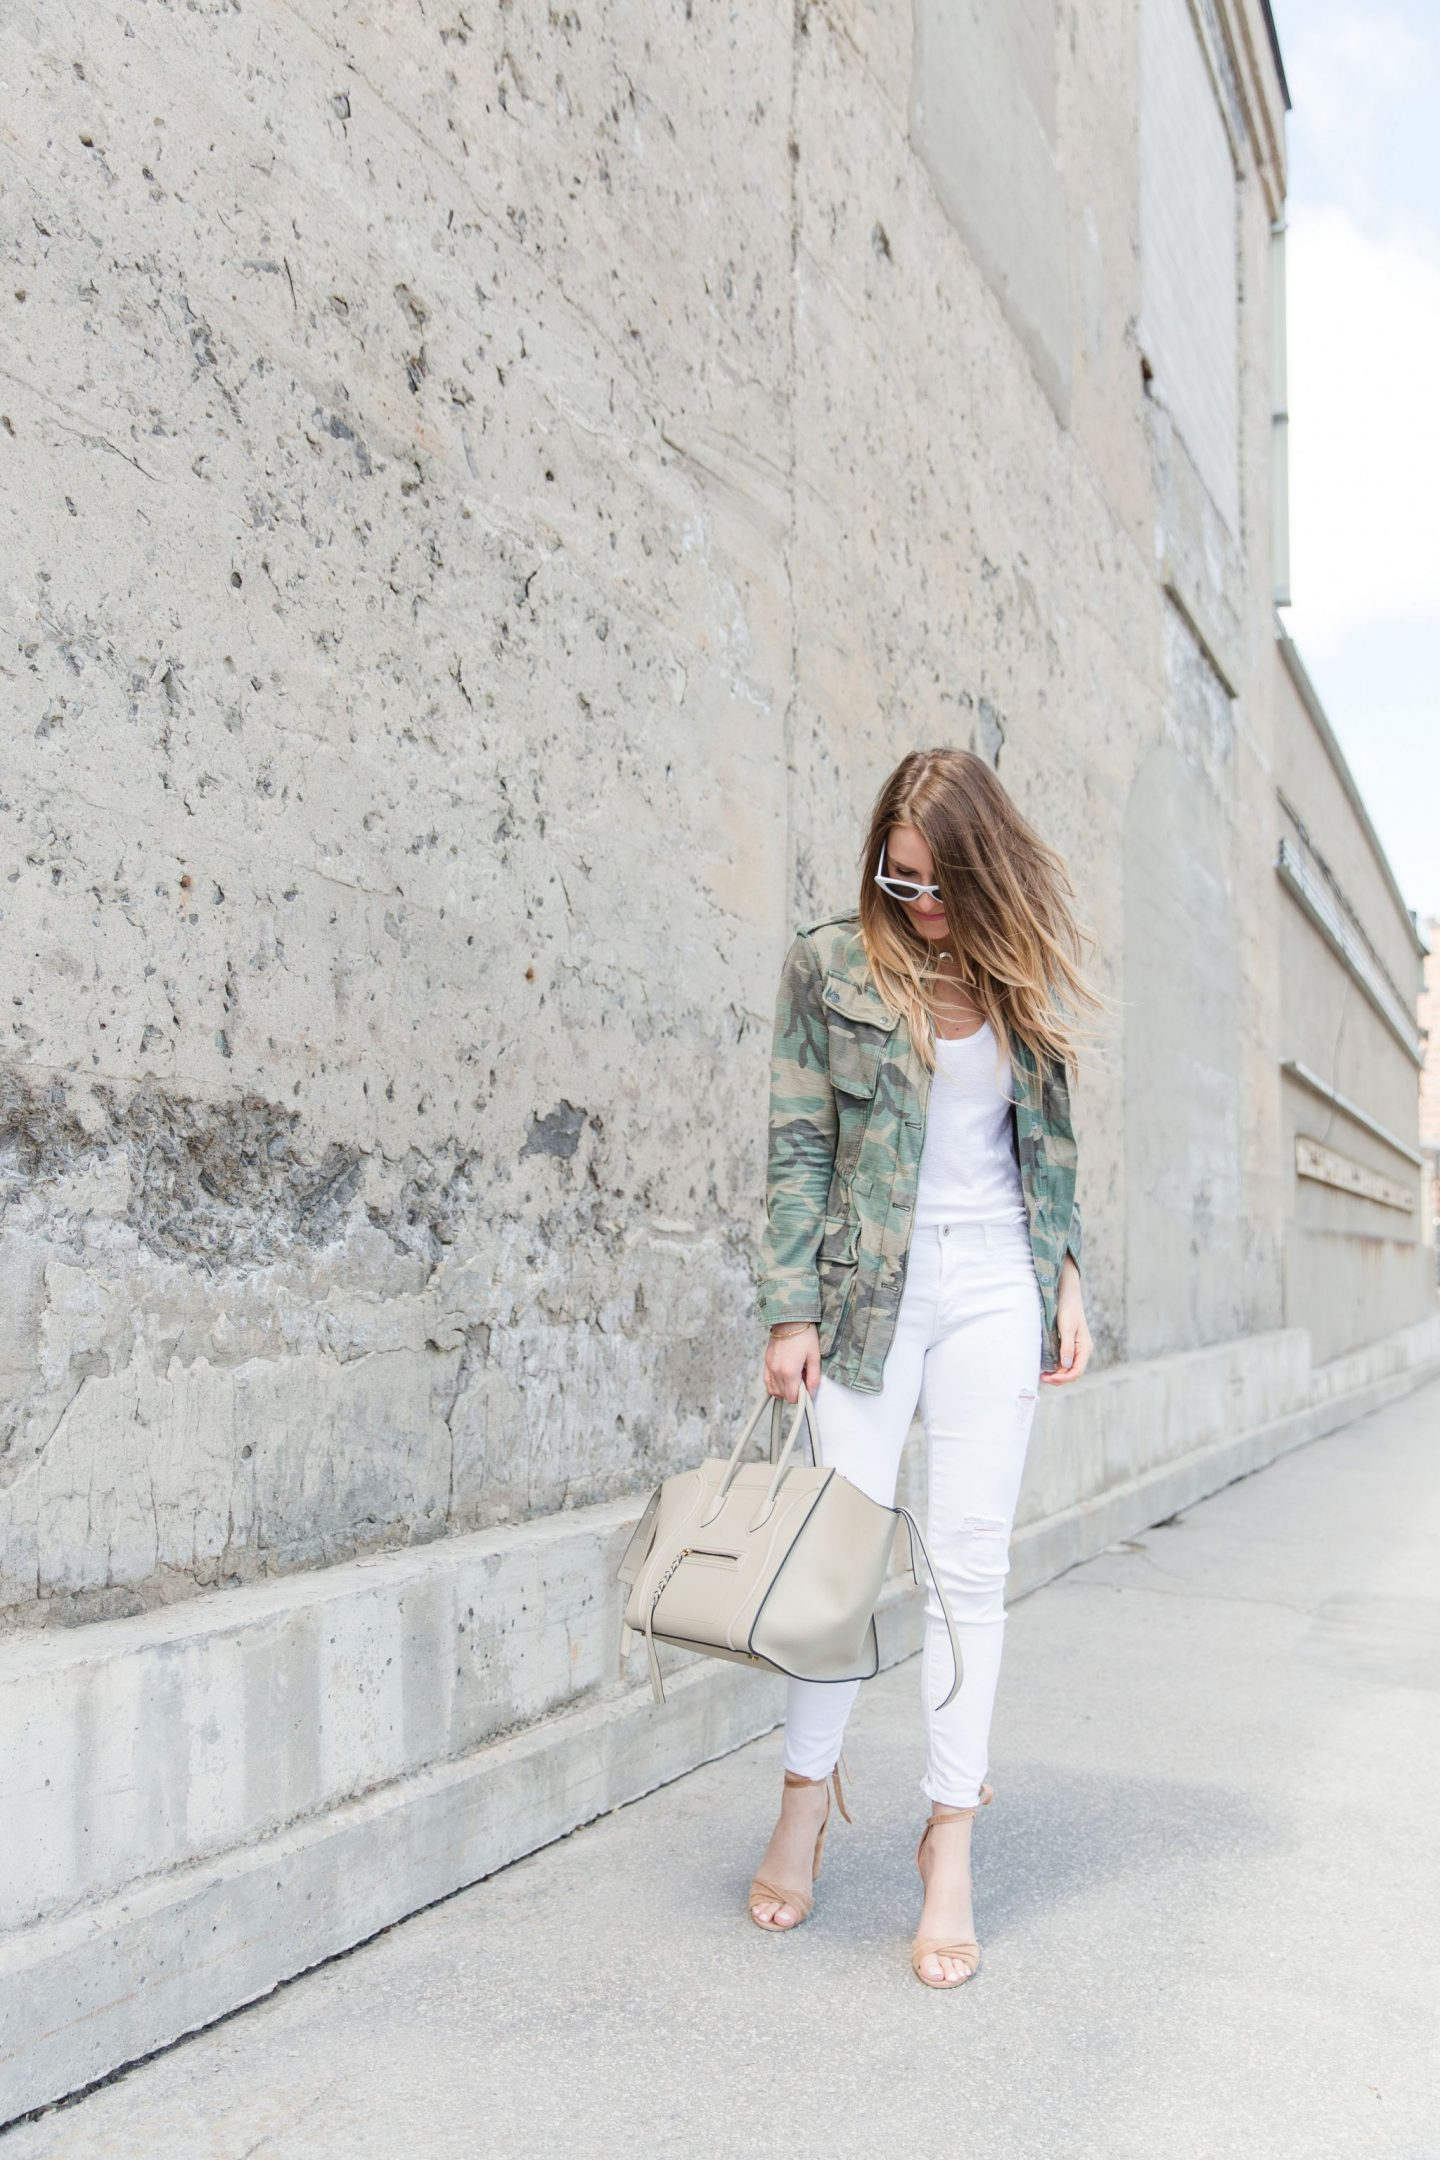 1 person, fashion blogger, camo jacket and Celine phantom bag